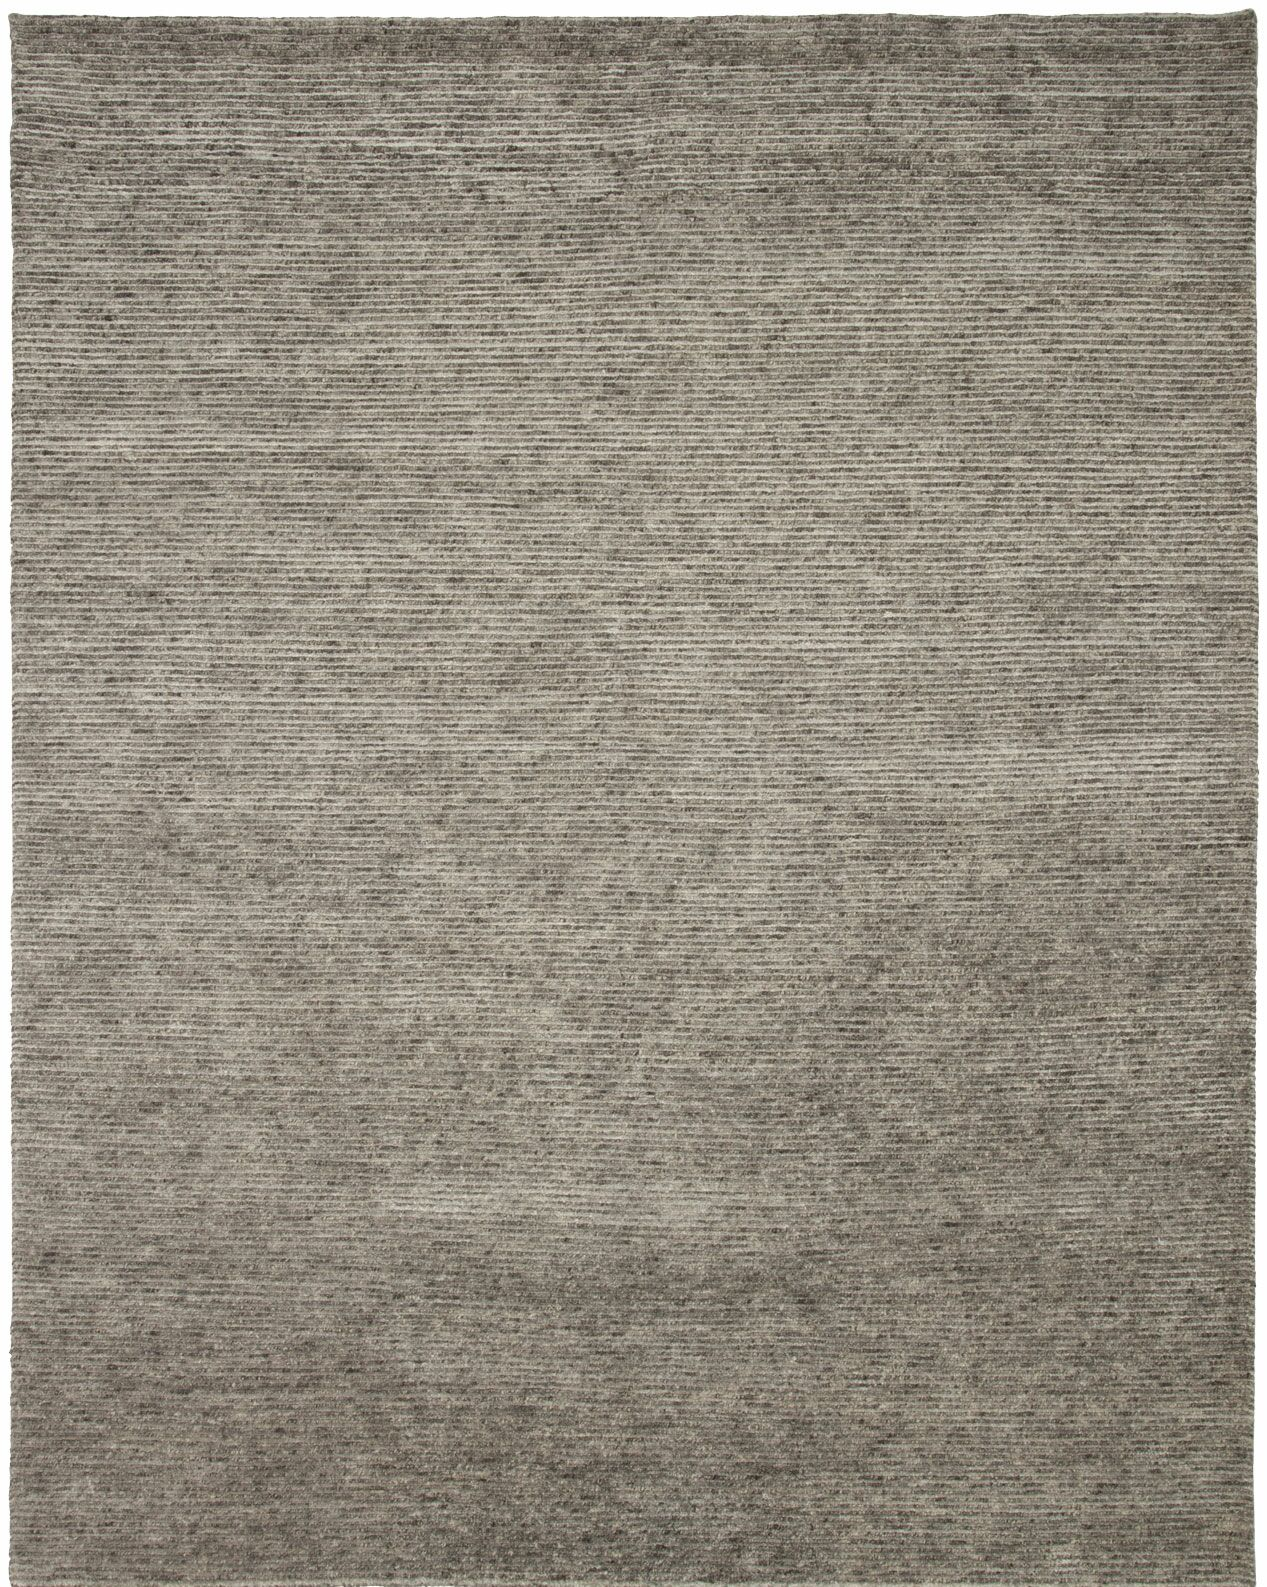 Horizon Hand-Knotted Gray Area Rug Rug Size: 6' x 9'